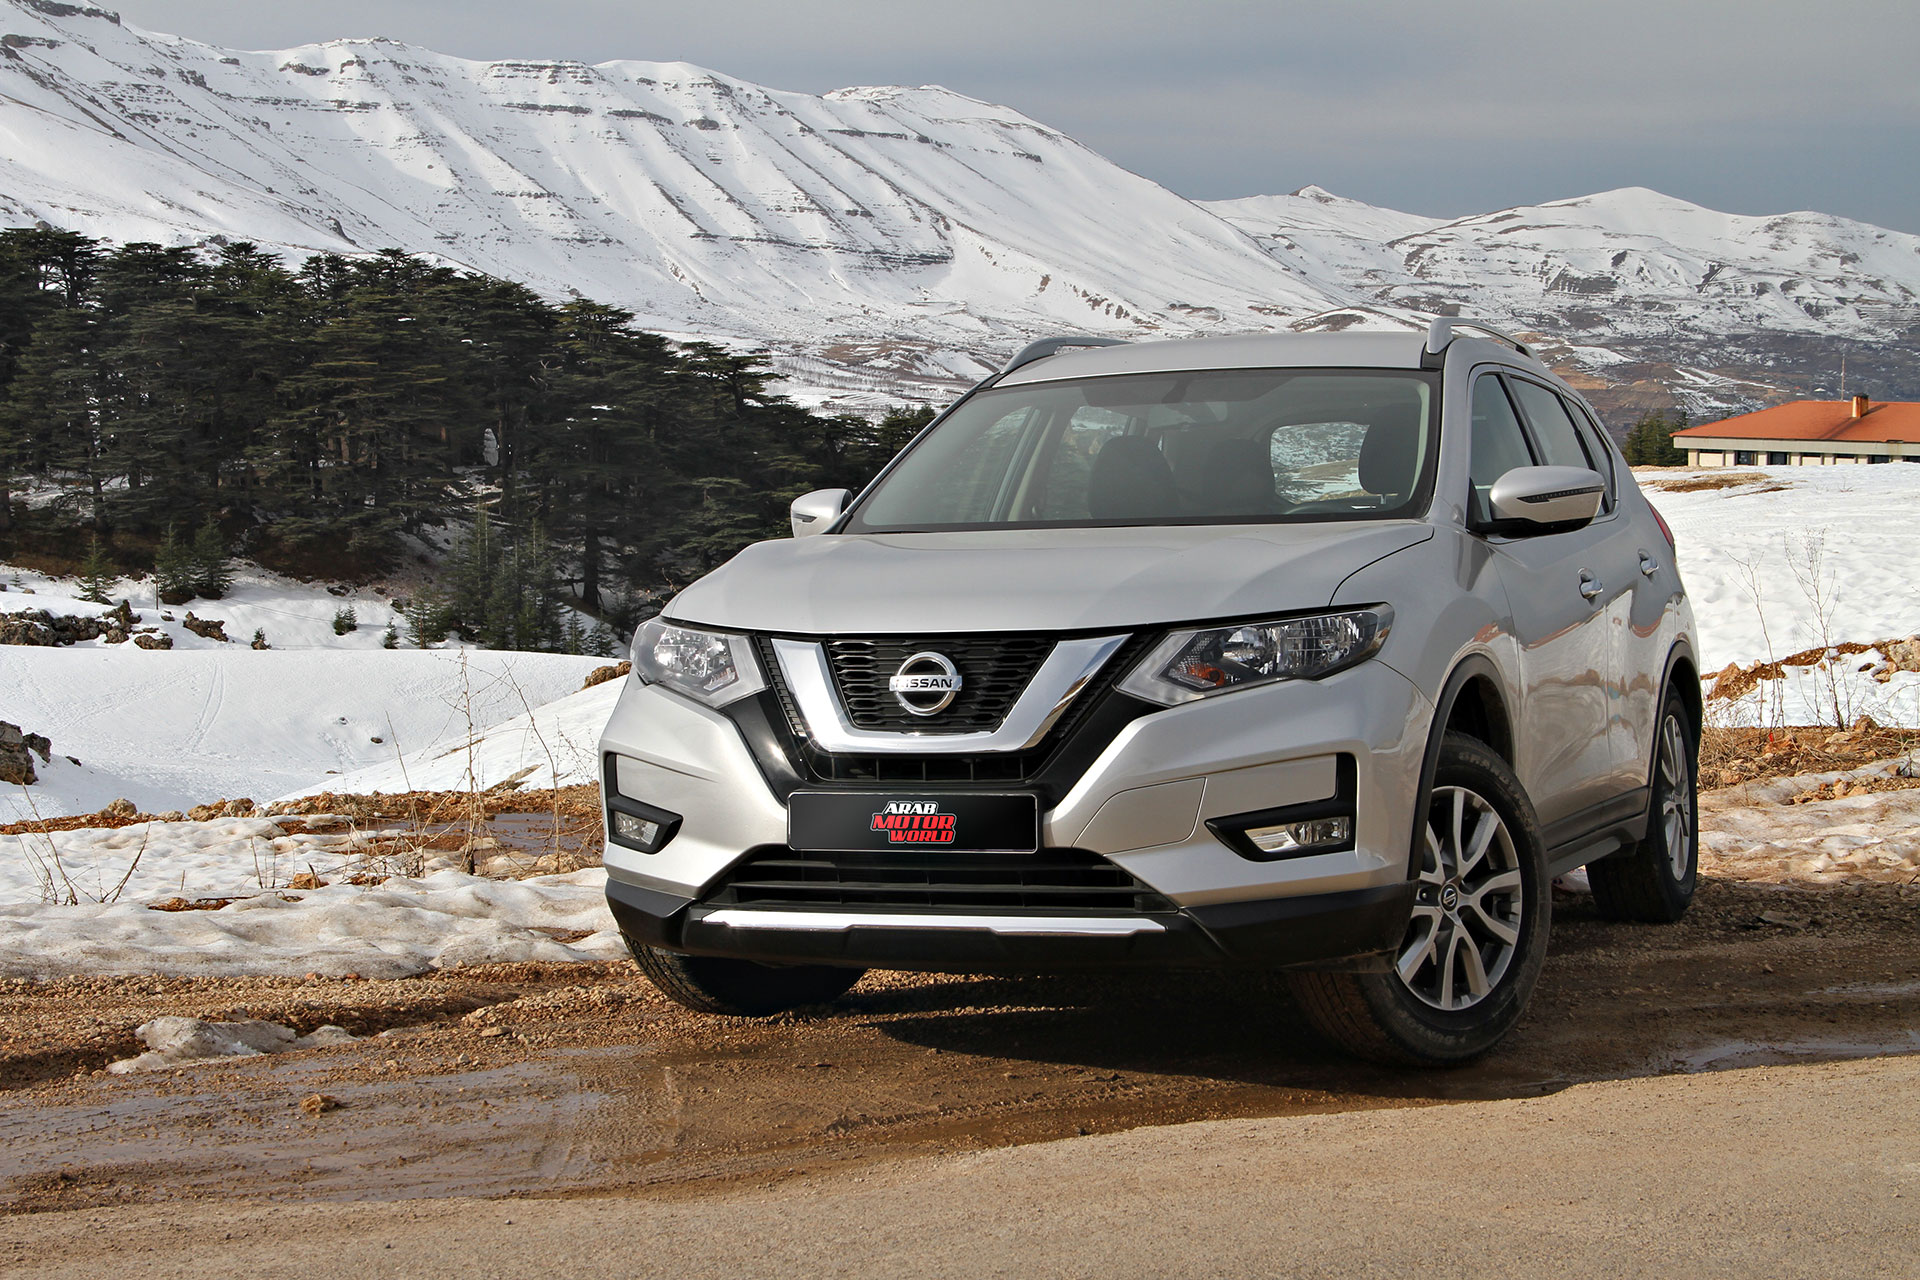 a snow retreat onboard the upgraded 2018 nissan x trail. Black Bedroom Furniture Sets. Home Design Ideas